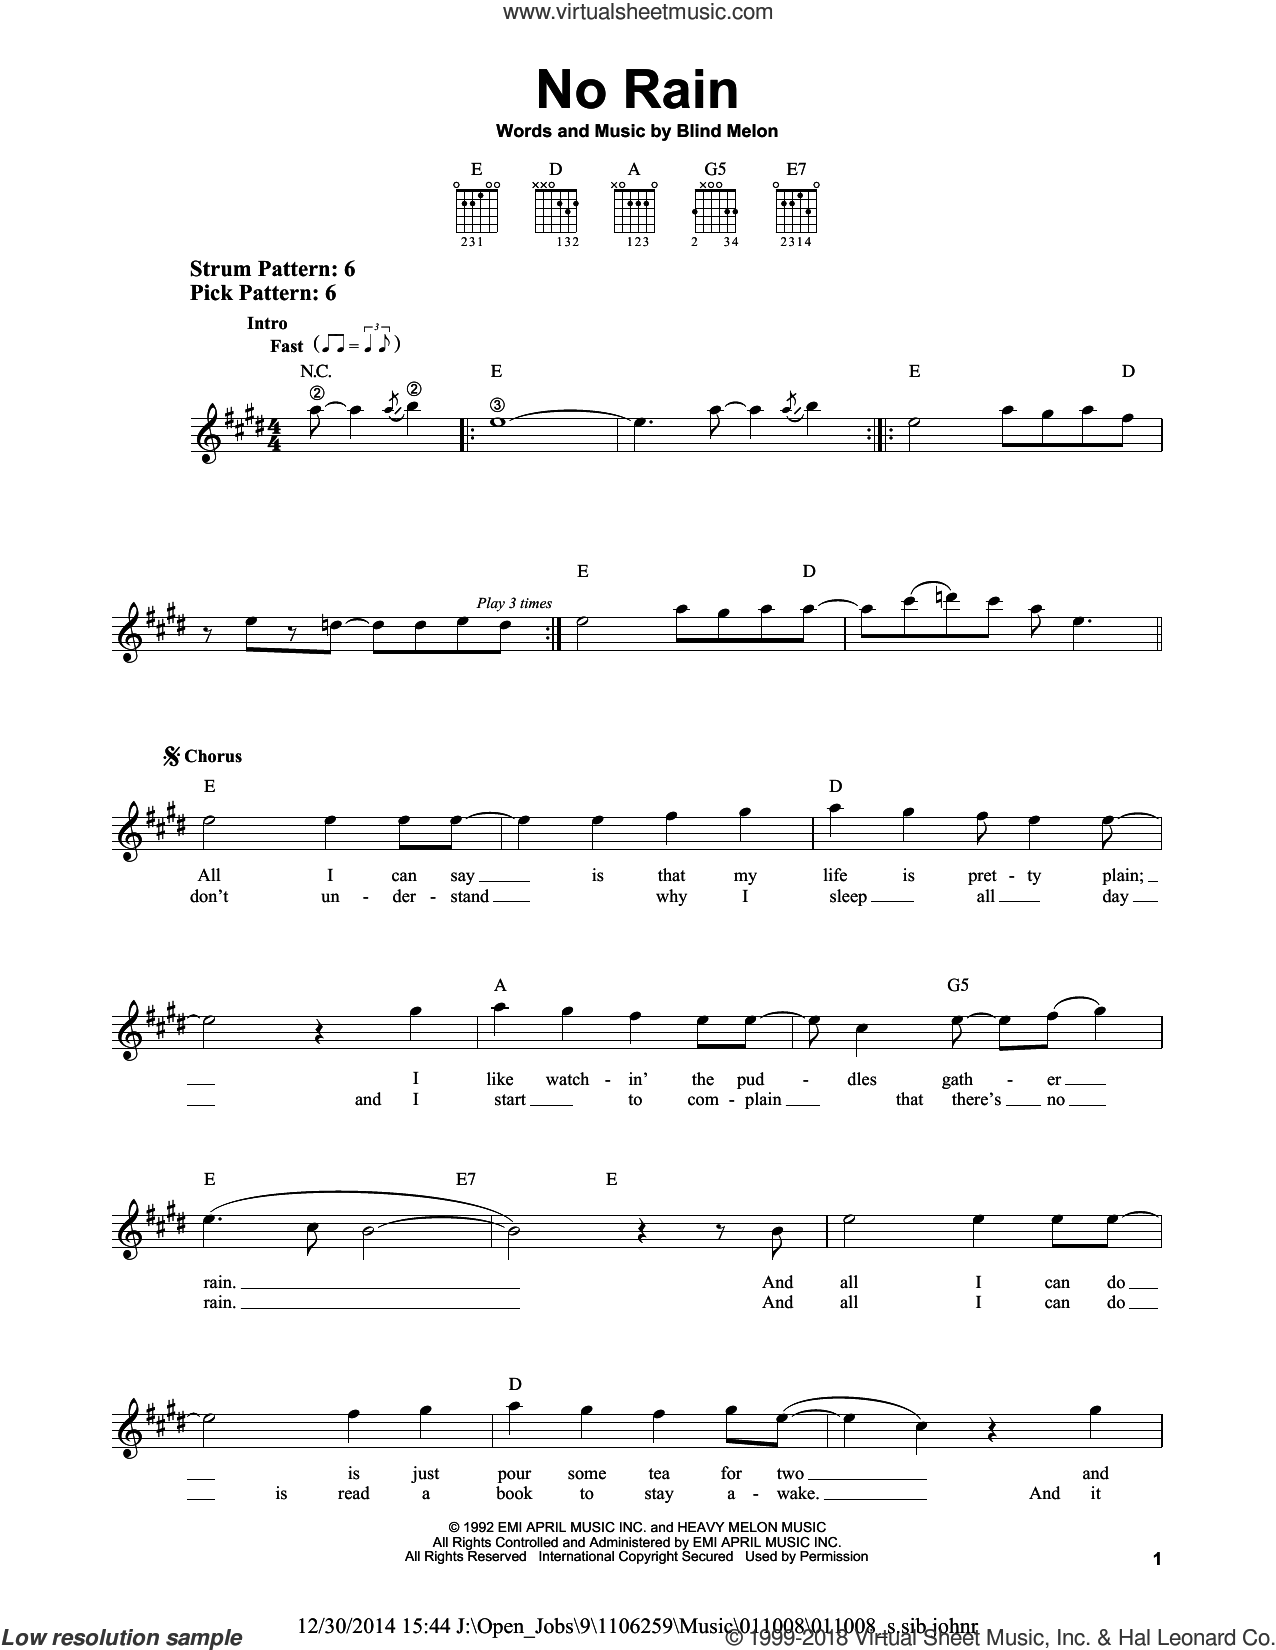 No Rain sheet music for guitar solo (chords) by Blind Melon. Score Image Preview.